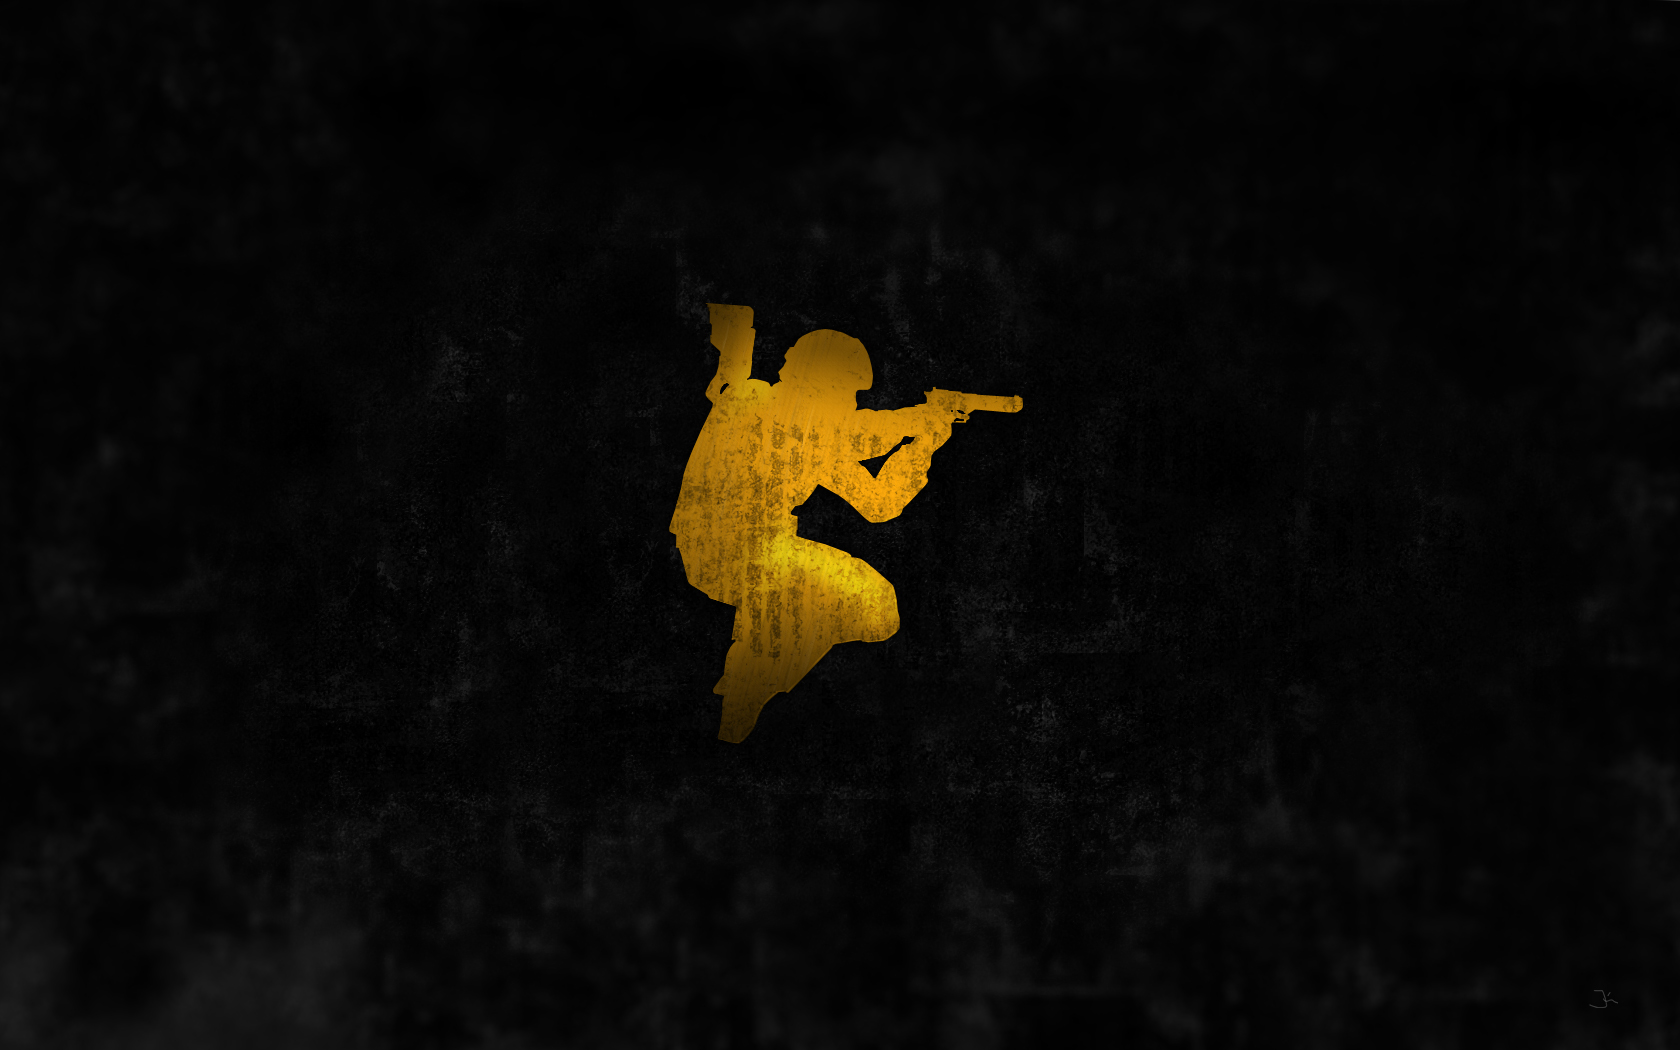 CS Counter strike Source Wallpaper HD | Wallpup.com Counter Strike Wallpaper Hd